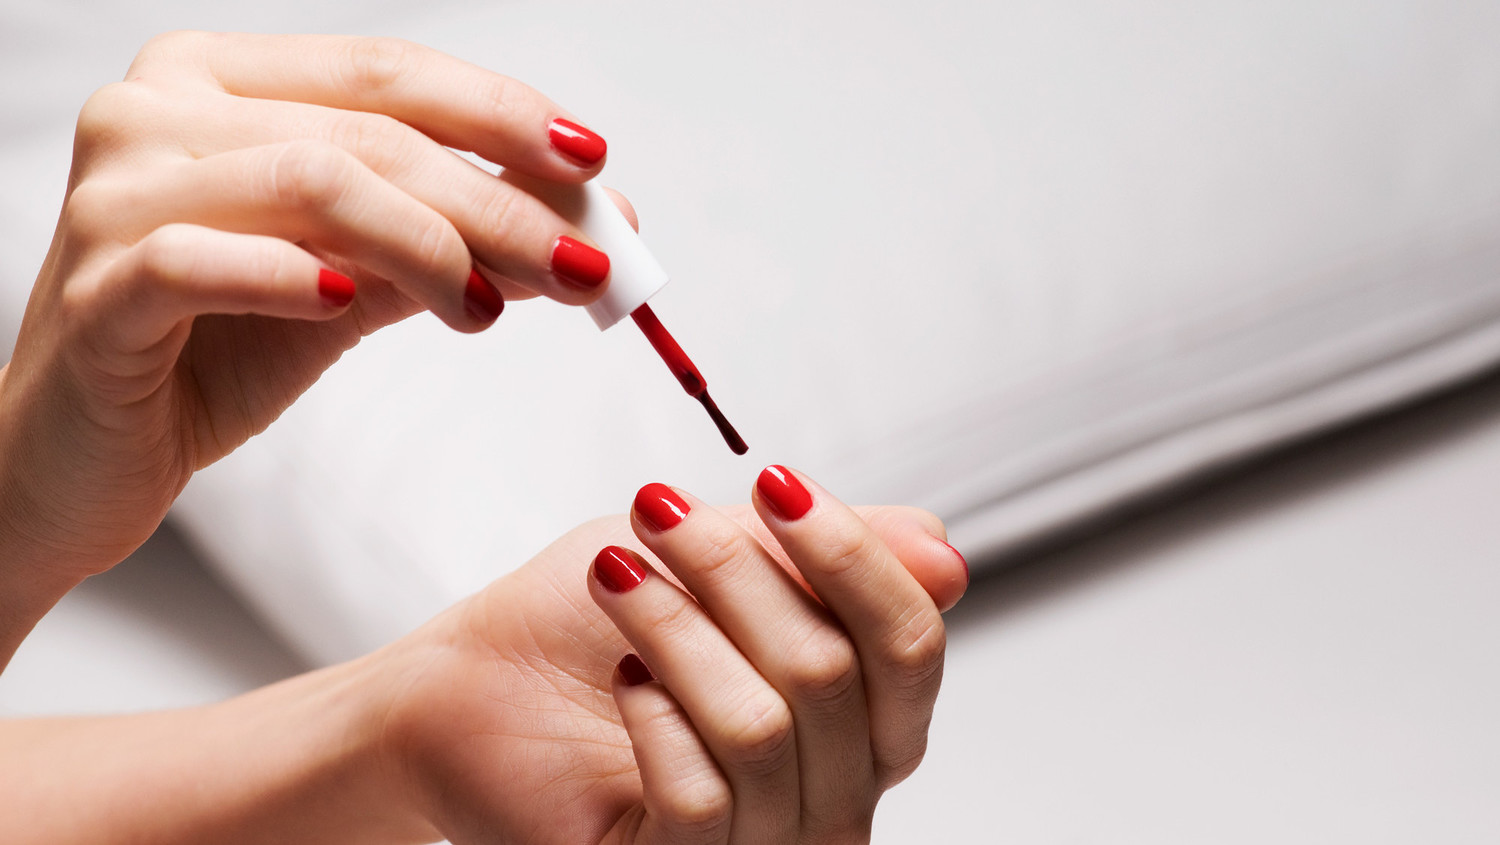 DIY Nails: Secrets to the Perfect At-Home Manicure | Martha Stewart ...